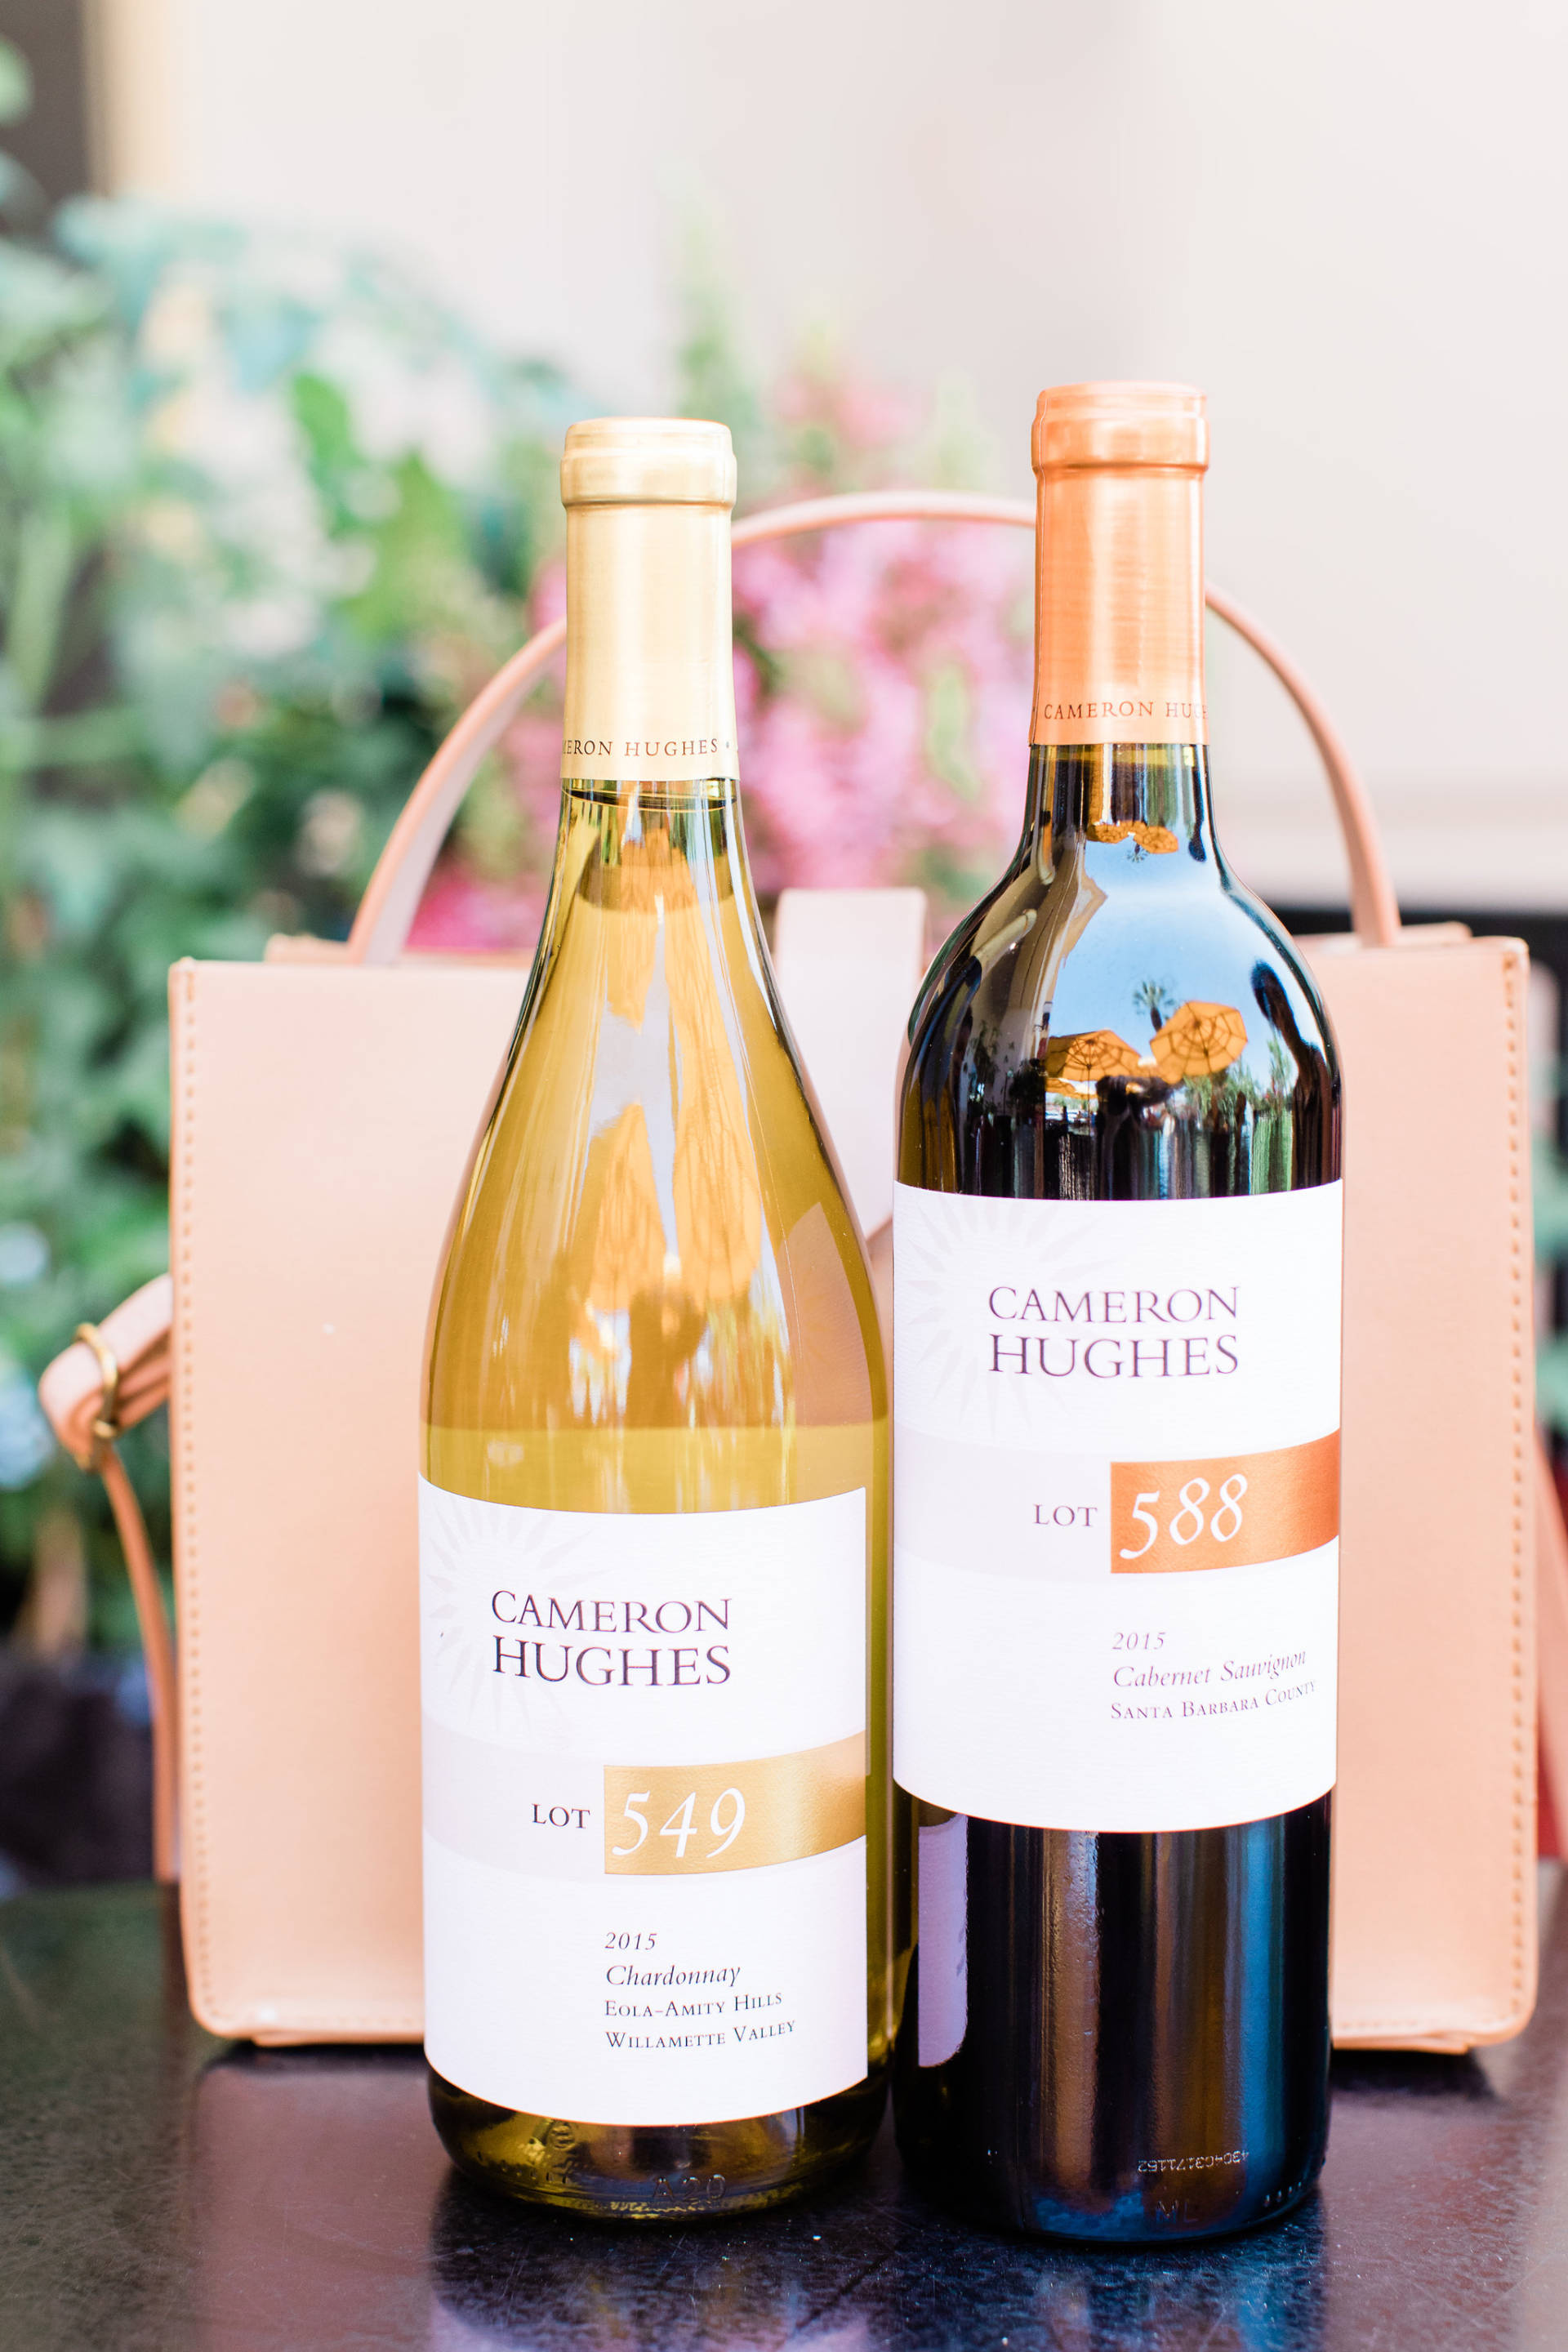 Cameron Hughes Wine- Celebrate Life: Cameron Hughes Wine is all about what's inside the bottle, no fancy label, simple website… just high quality wine at affordable prices. Celebrate simply!